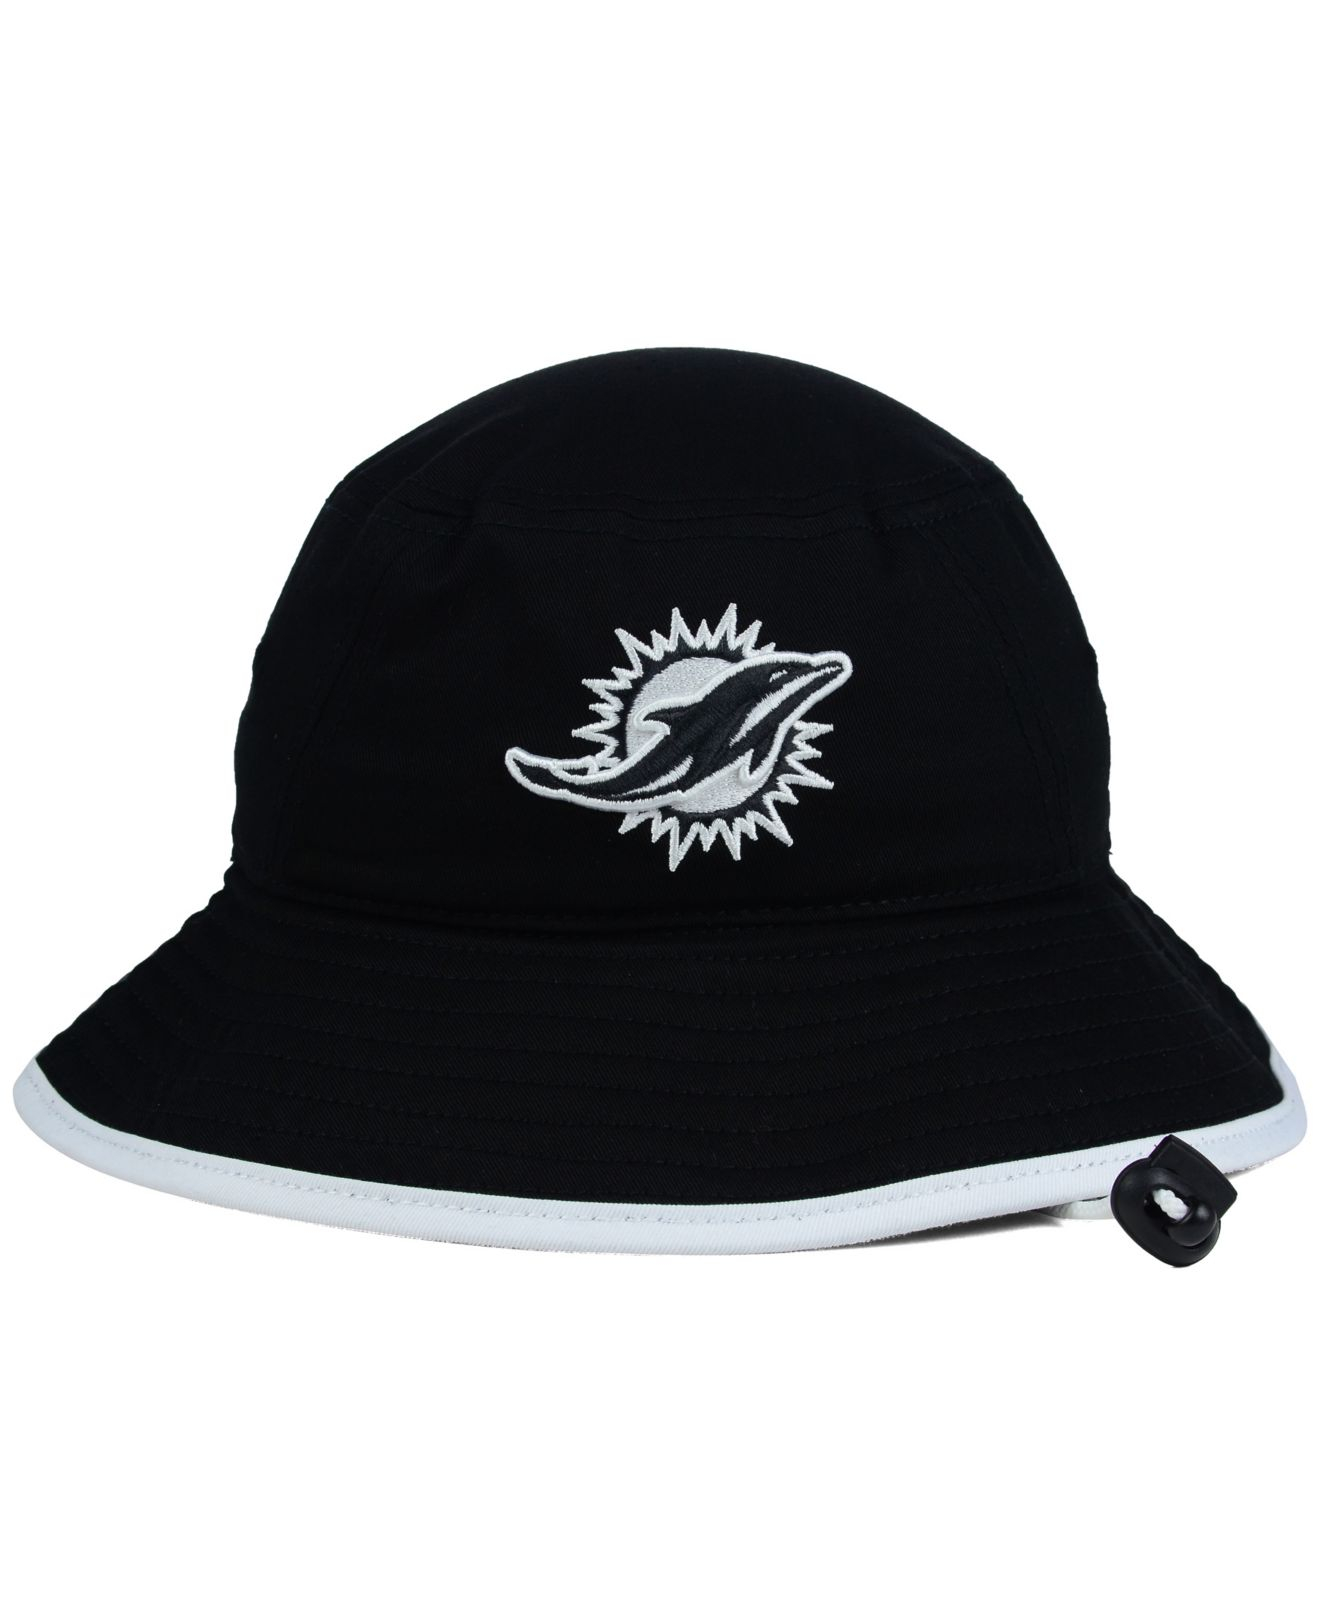 Lyst - KTZ Miami Dolphins Nfl Black White Bucket Hat in Black 1ec7aee444a